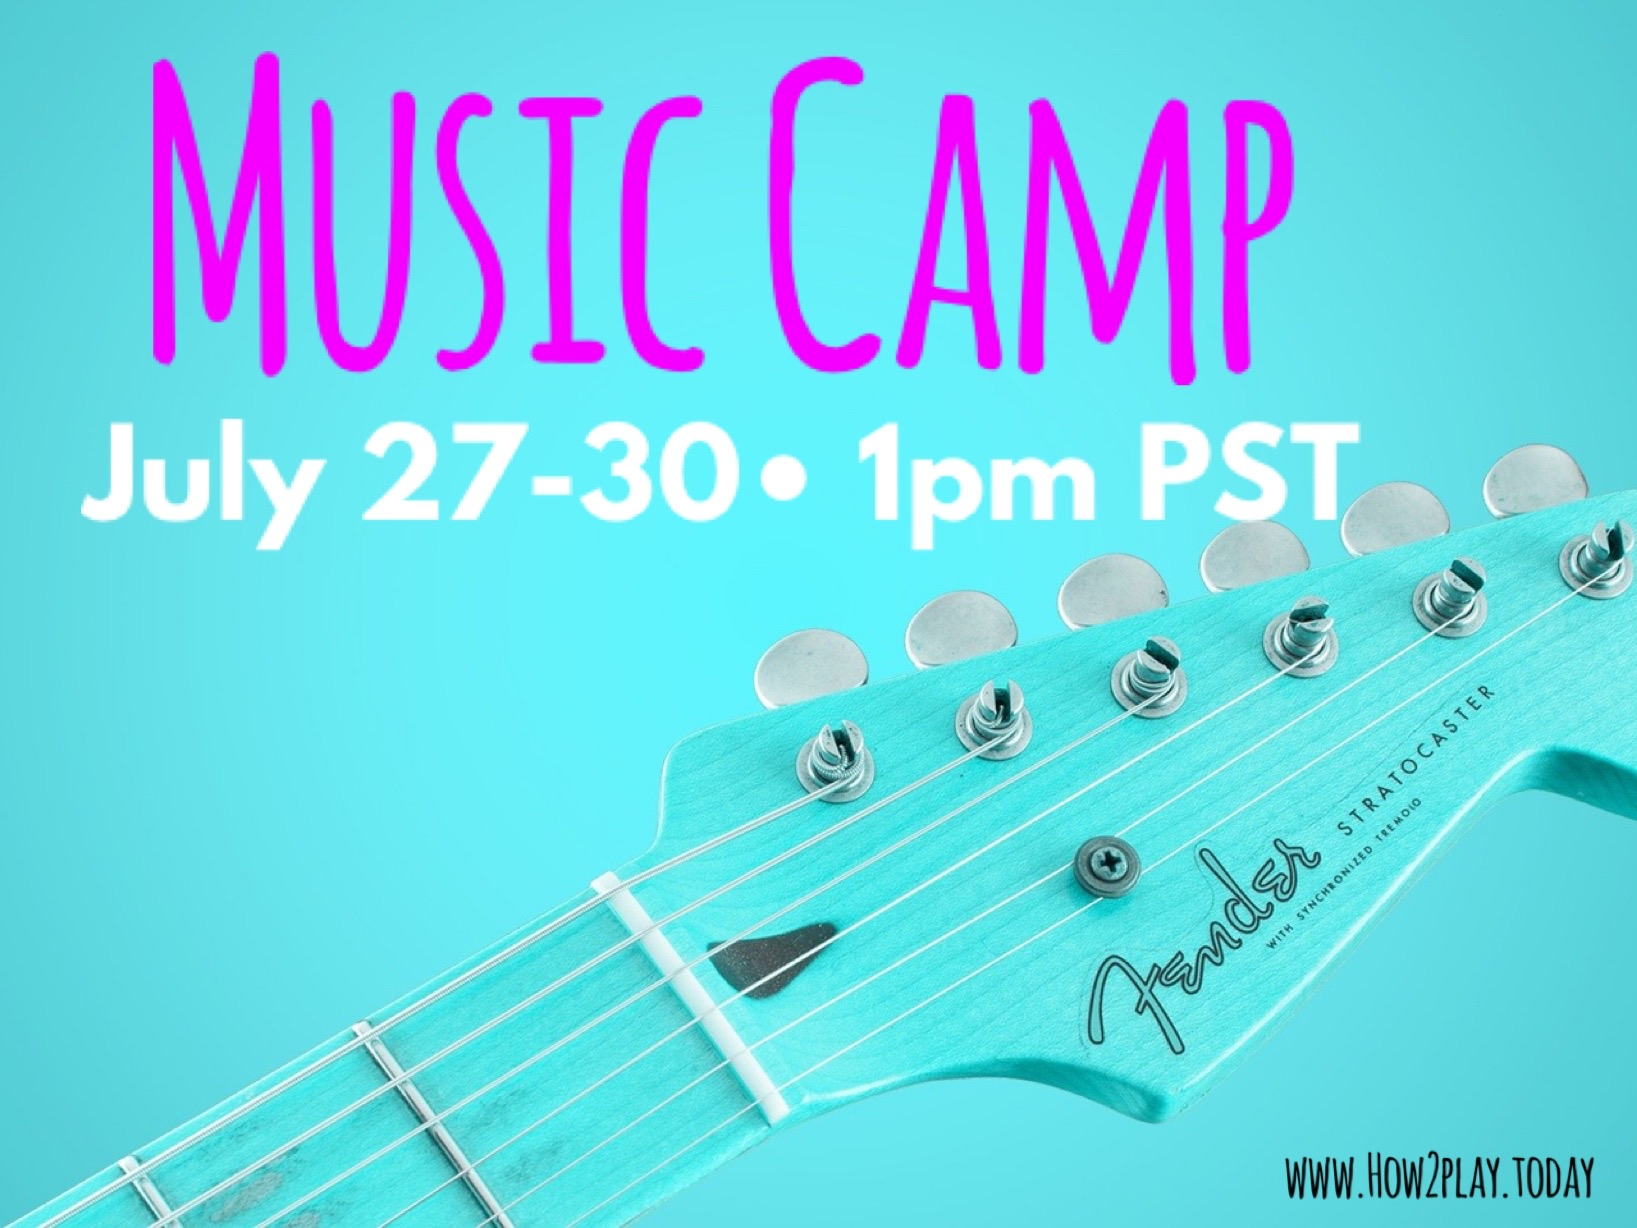 Music Camp: Ready to explore famous composers, decorate your own guitar, and our very own mini talent show where everyone can show off something they love doing.